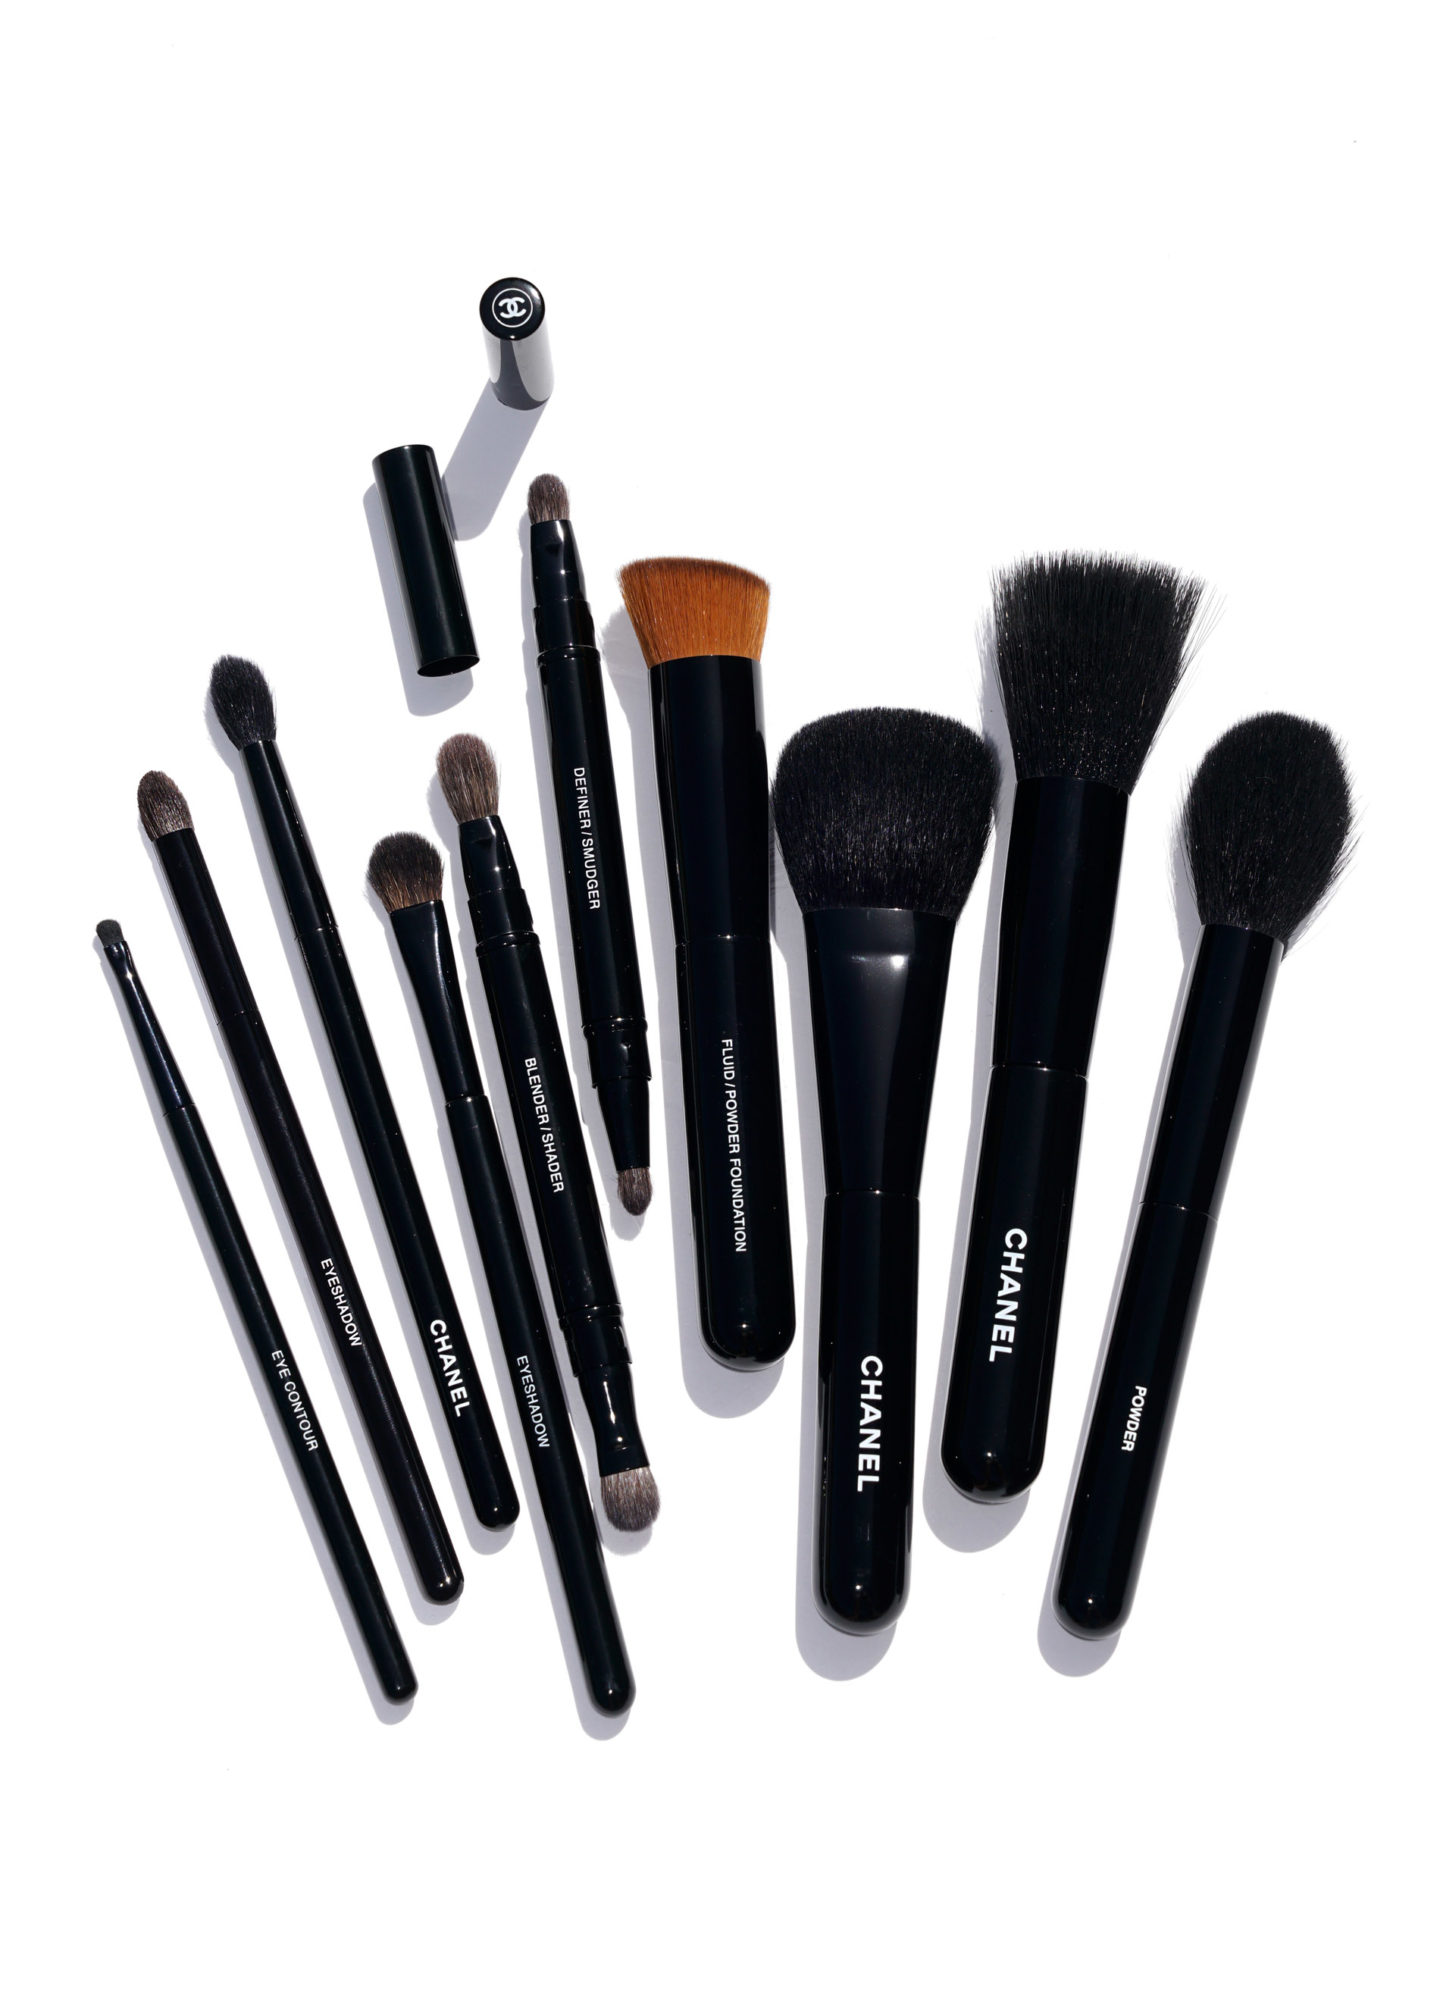 Chanel Makeup Brushes - New Design